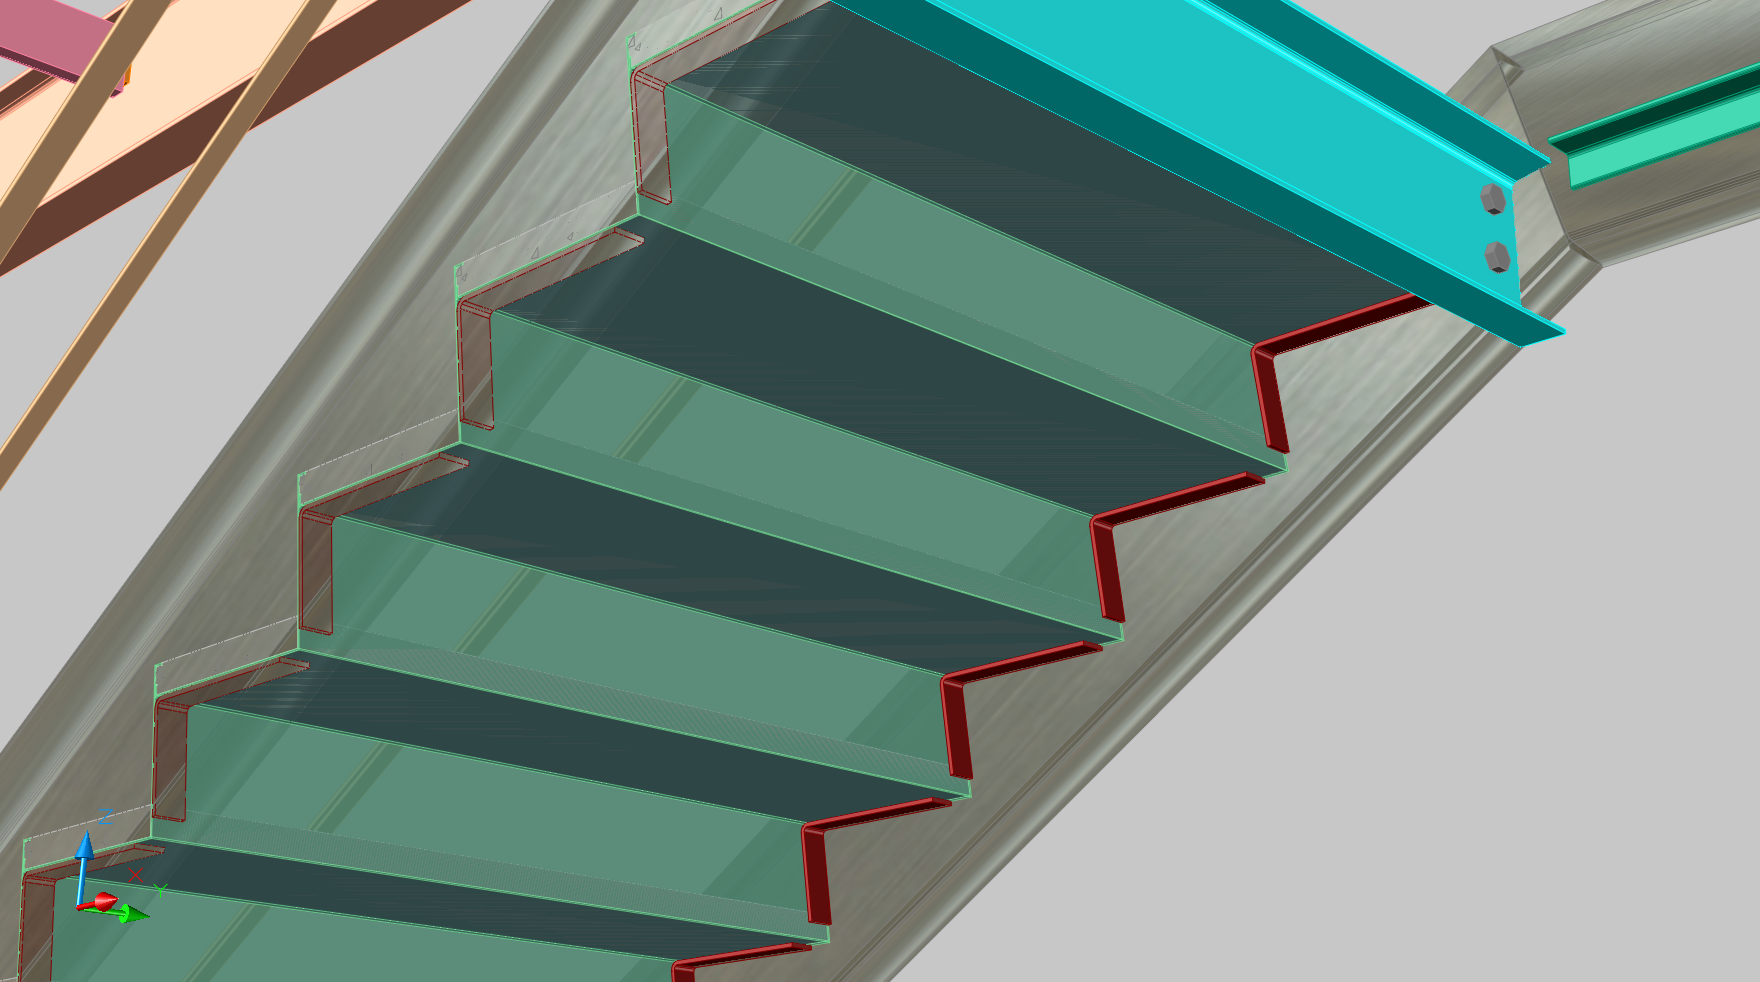 Solidstructural Newfeatures